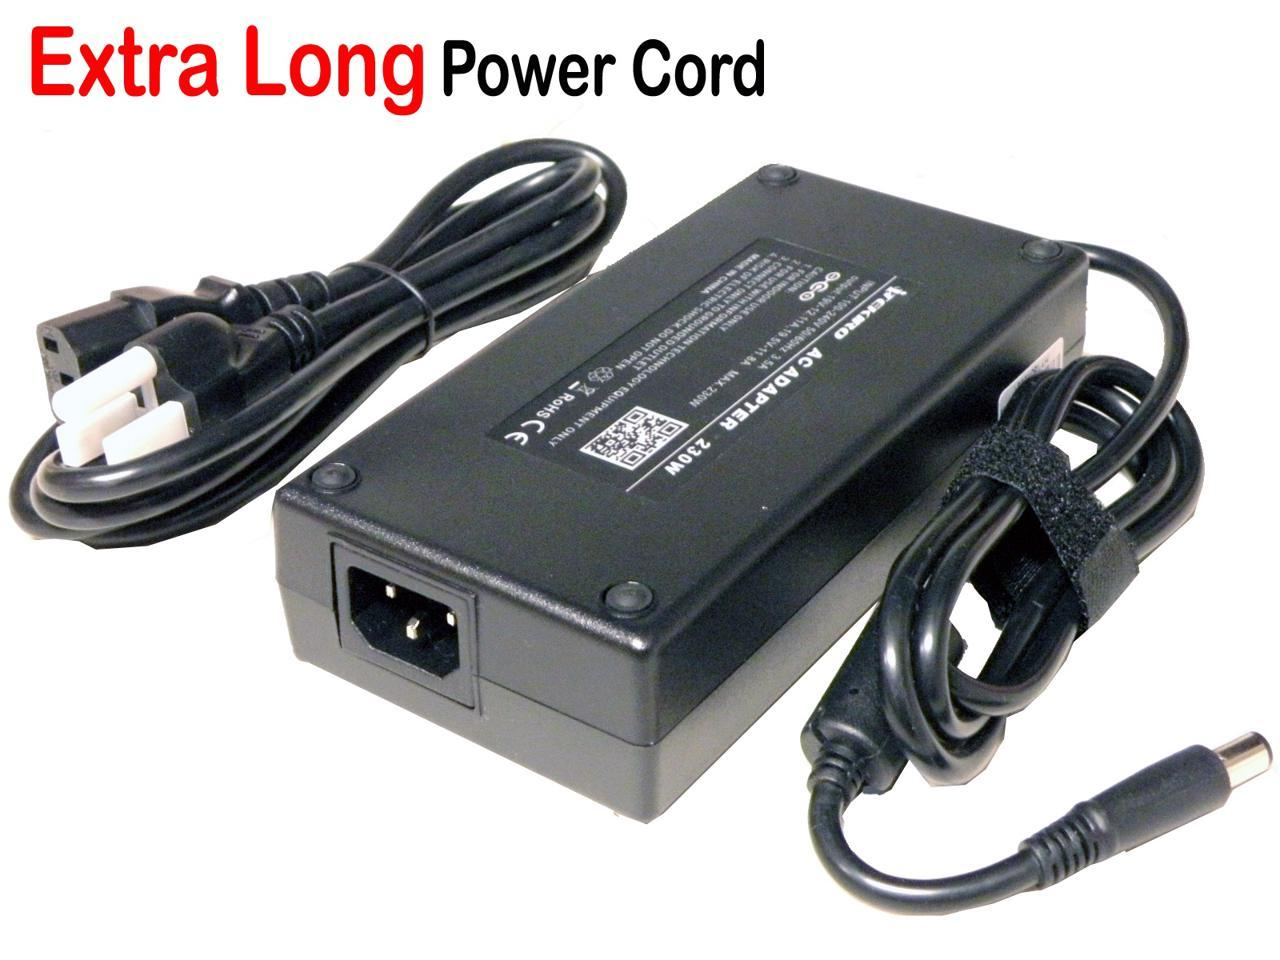 AT LCC 230W AC Adapter Power for MSI Gaming Laptop GT80 957-18121P-129 957-18121P-109